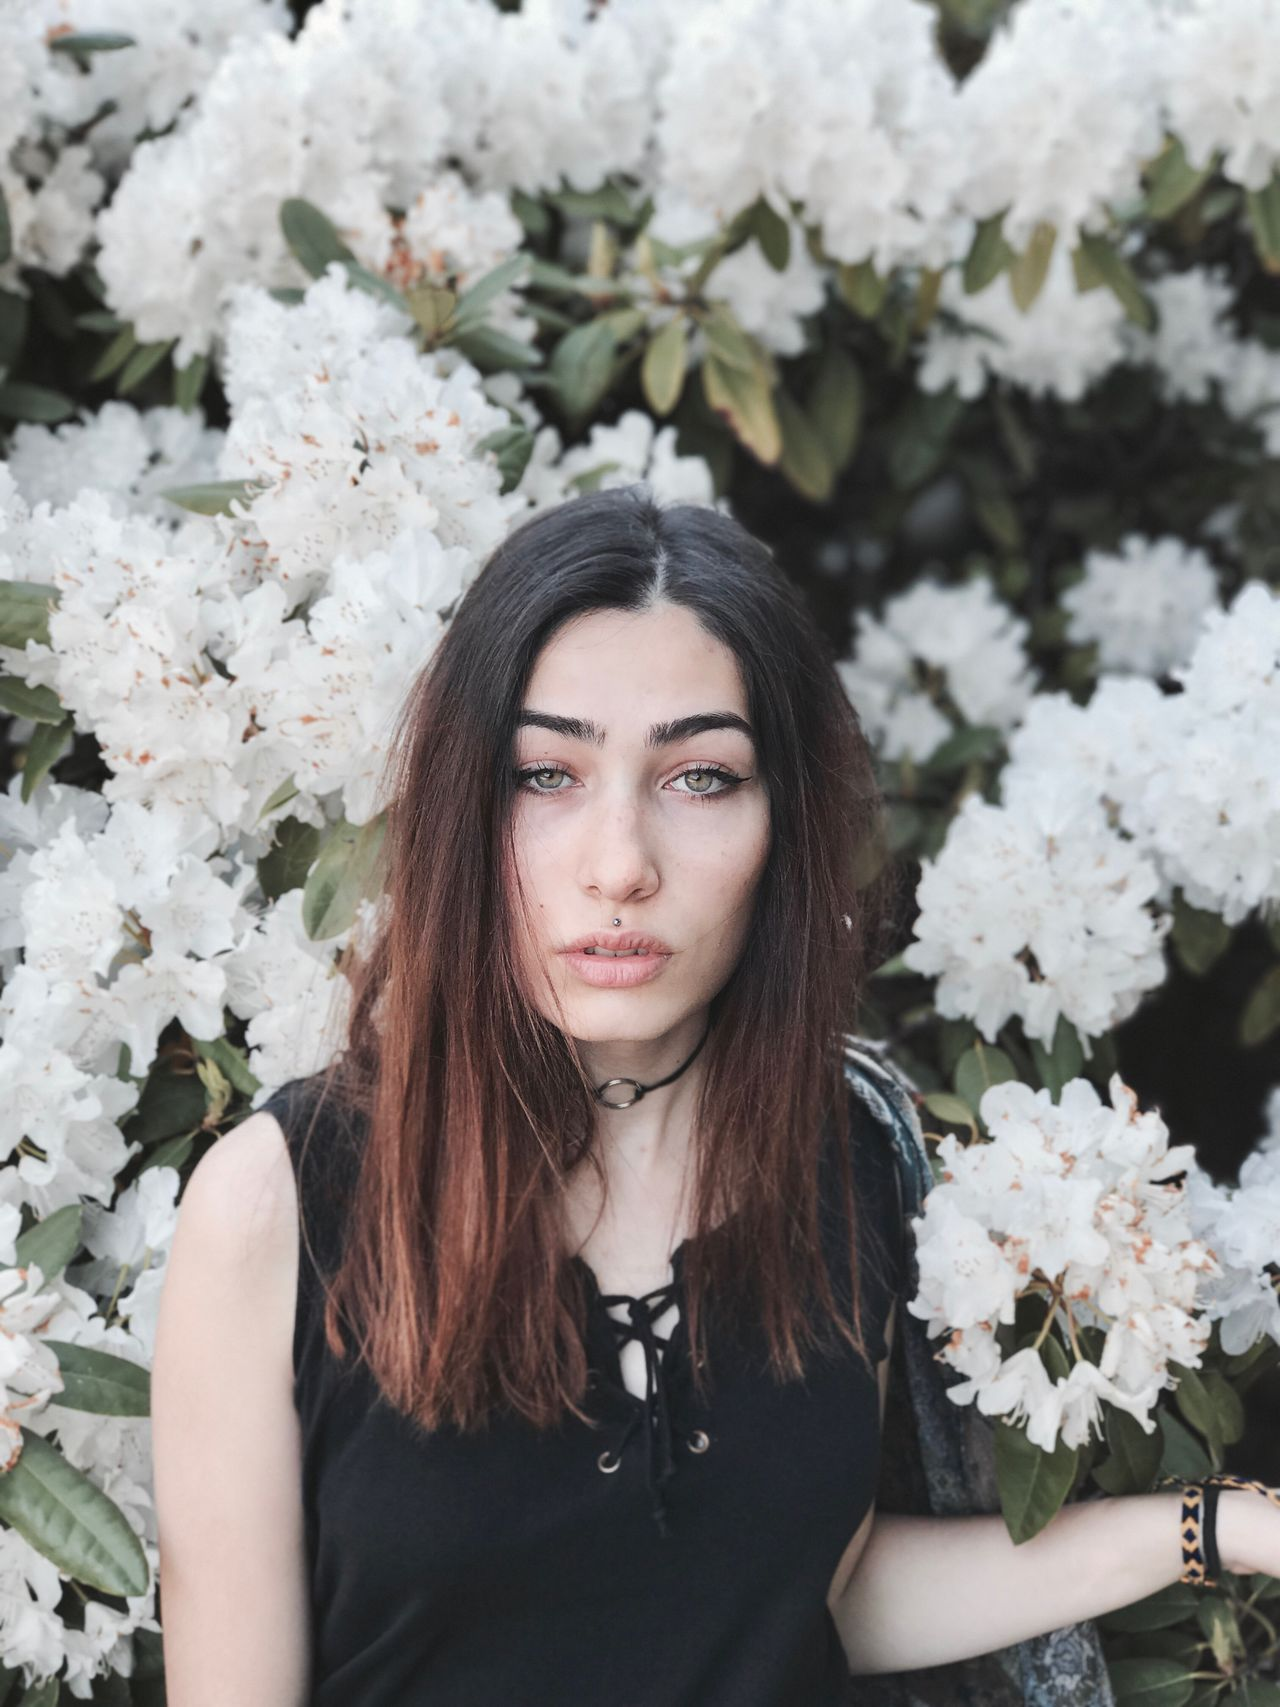 The Portraitist - 2017 EyeEm Awards Flower Young Adult One Person Beautiful Woman Young Women Looking At Camera Front View Bouquet Fragility Nature Portrait Real People Freshness Focus On Foreground Outdoors Beauty Day Lifestyles Plant Beauty In Nature